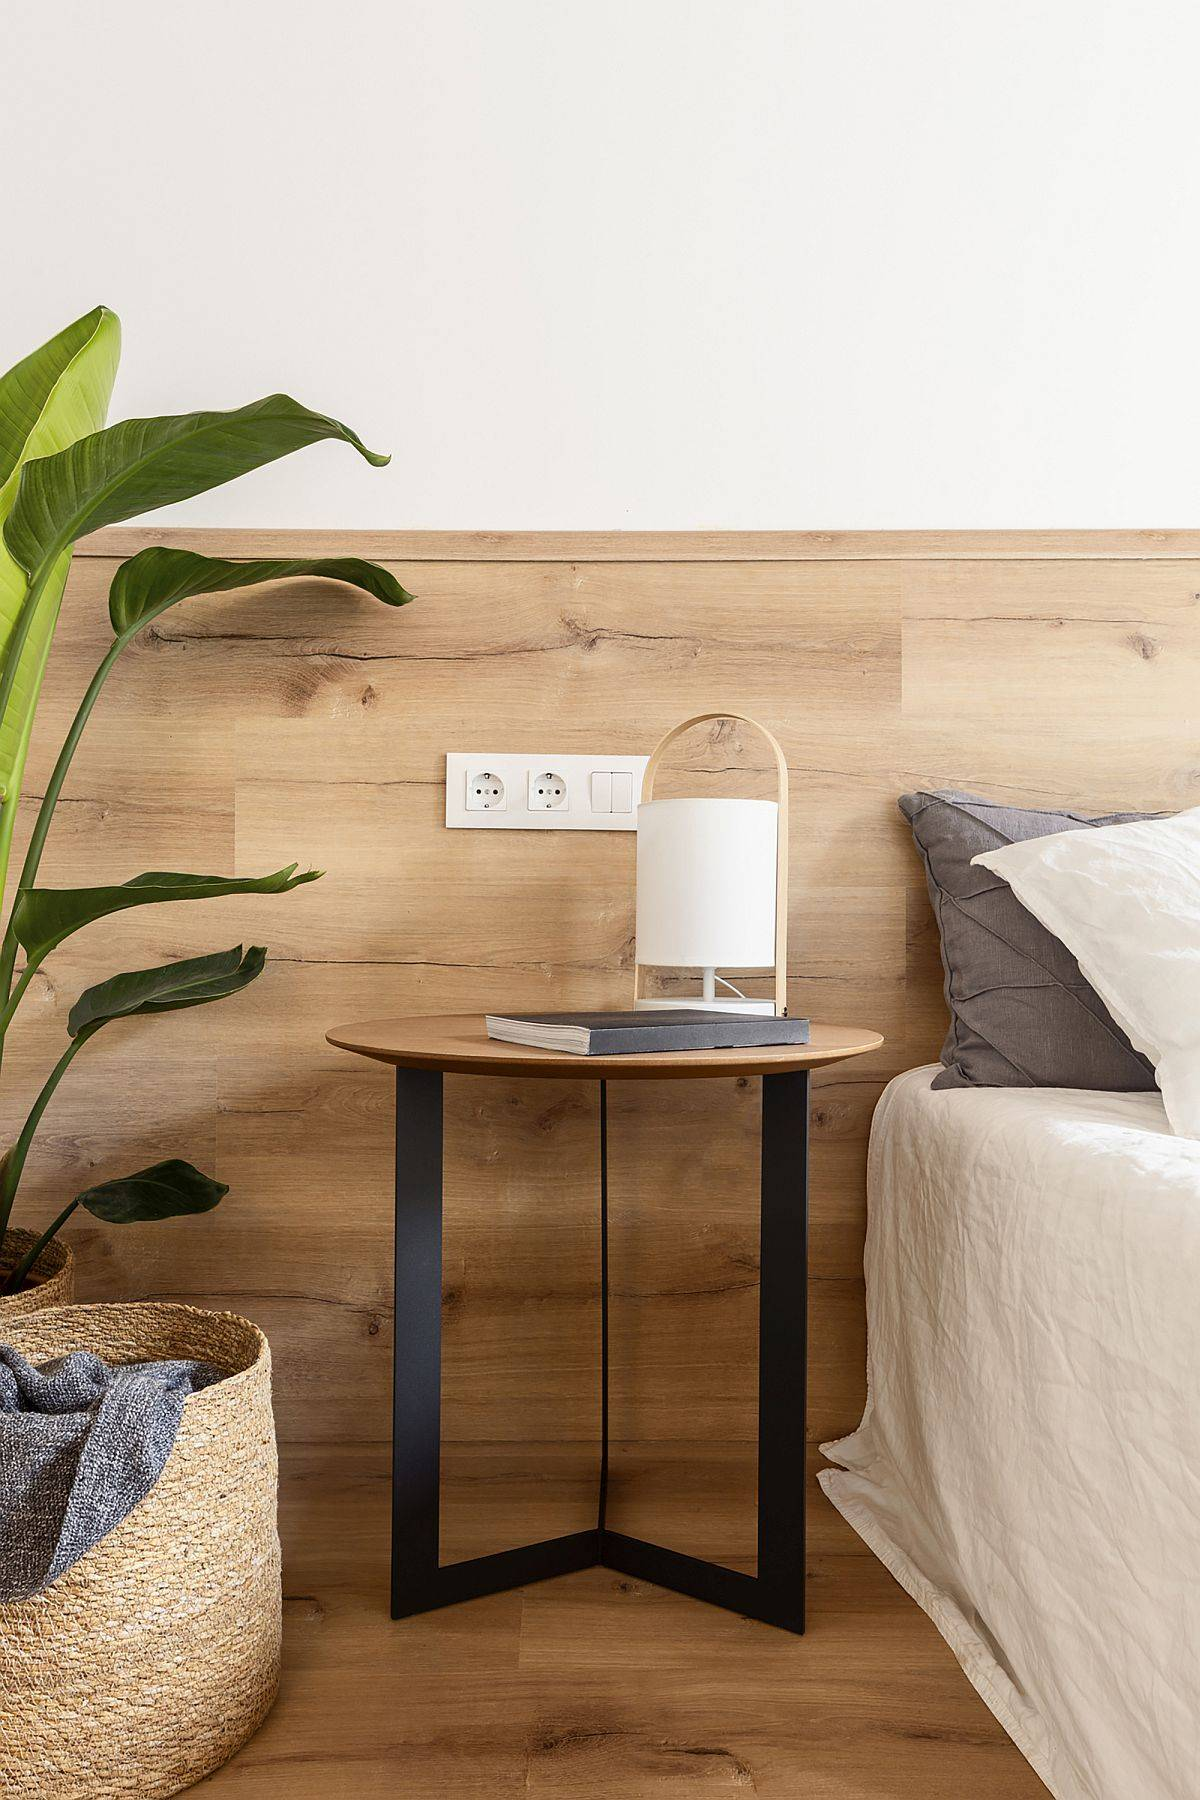 Small wooden bedside table for the modern Scandinavian style bedroom